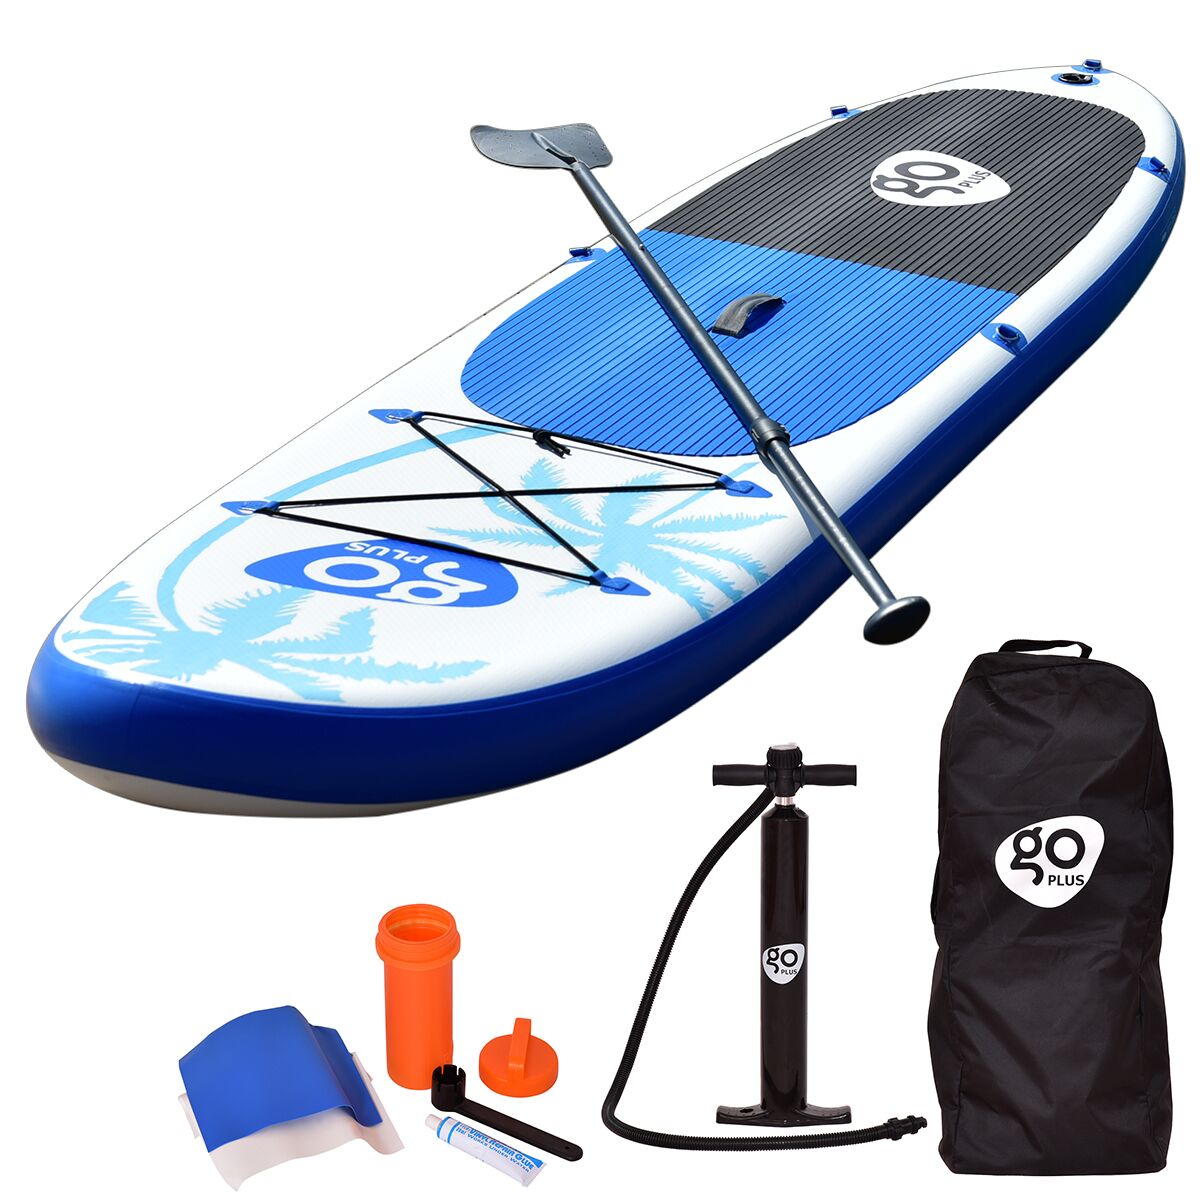 Costway Goplus 11' Inflatable Stand Up Paddle Board SUP w  Fin Adjustable Paddle Backpack by Costway